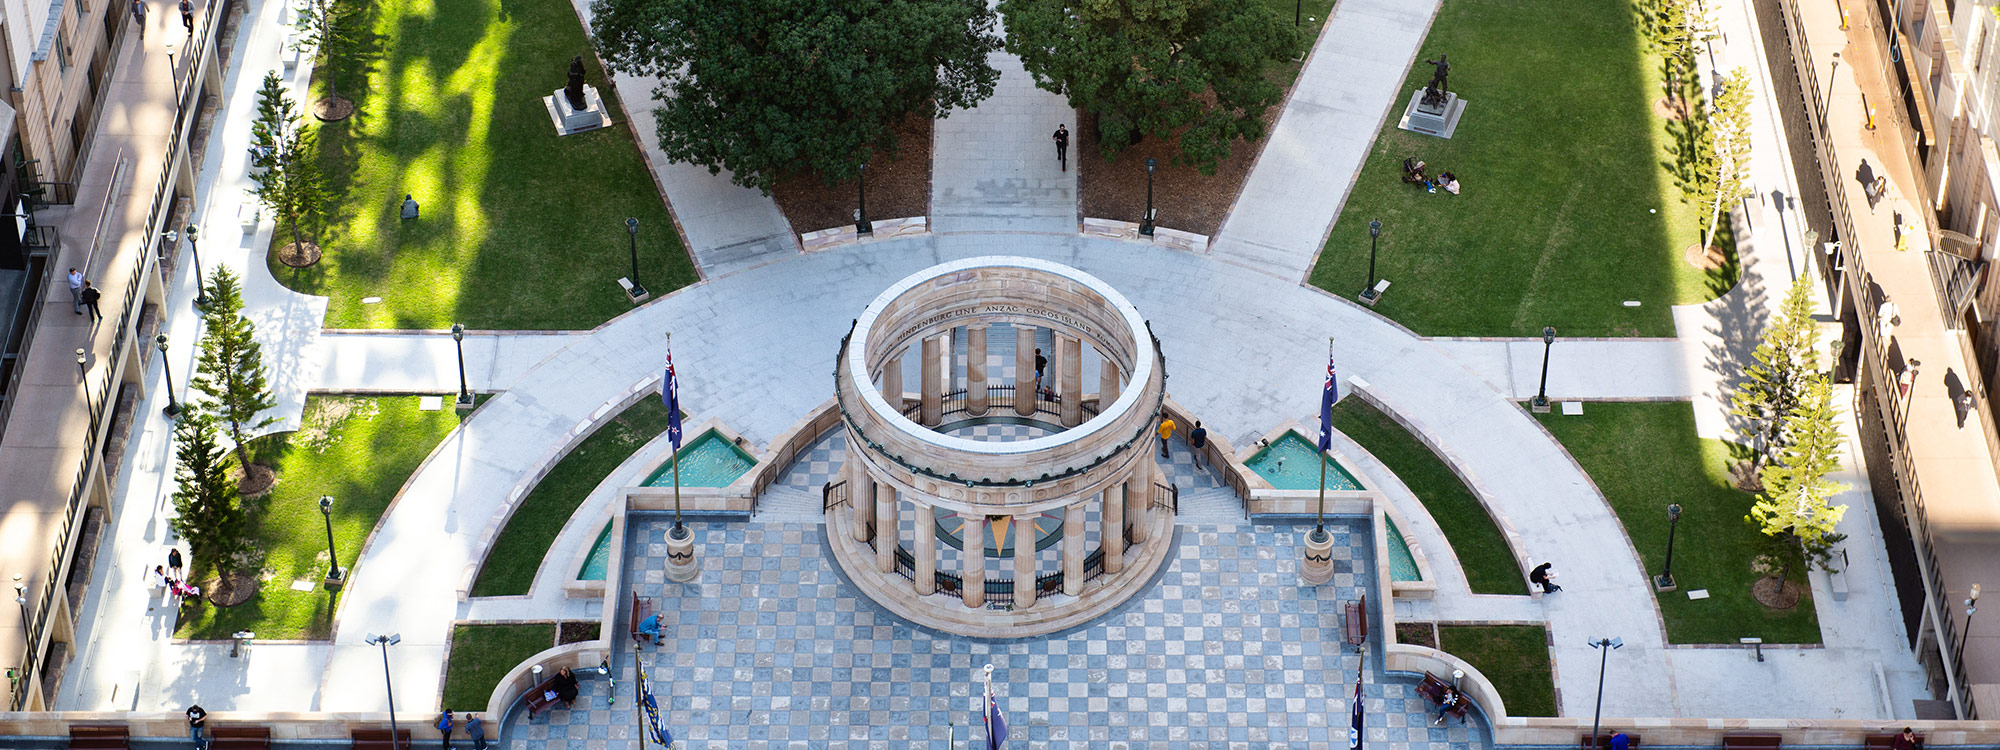 Anzac Square Aerial View